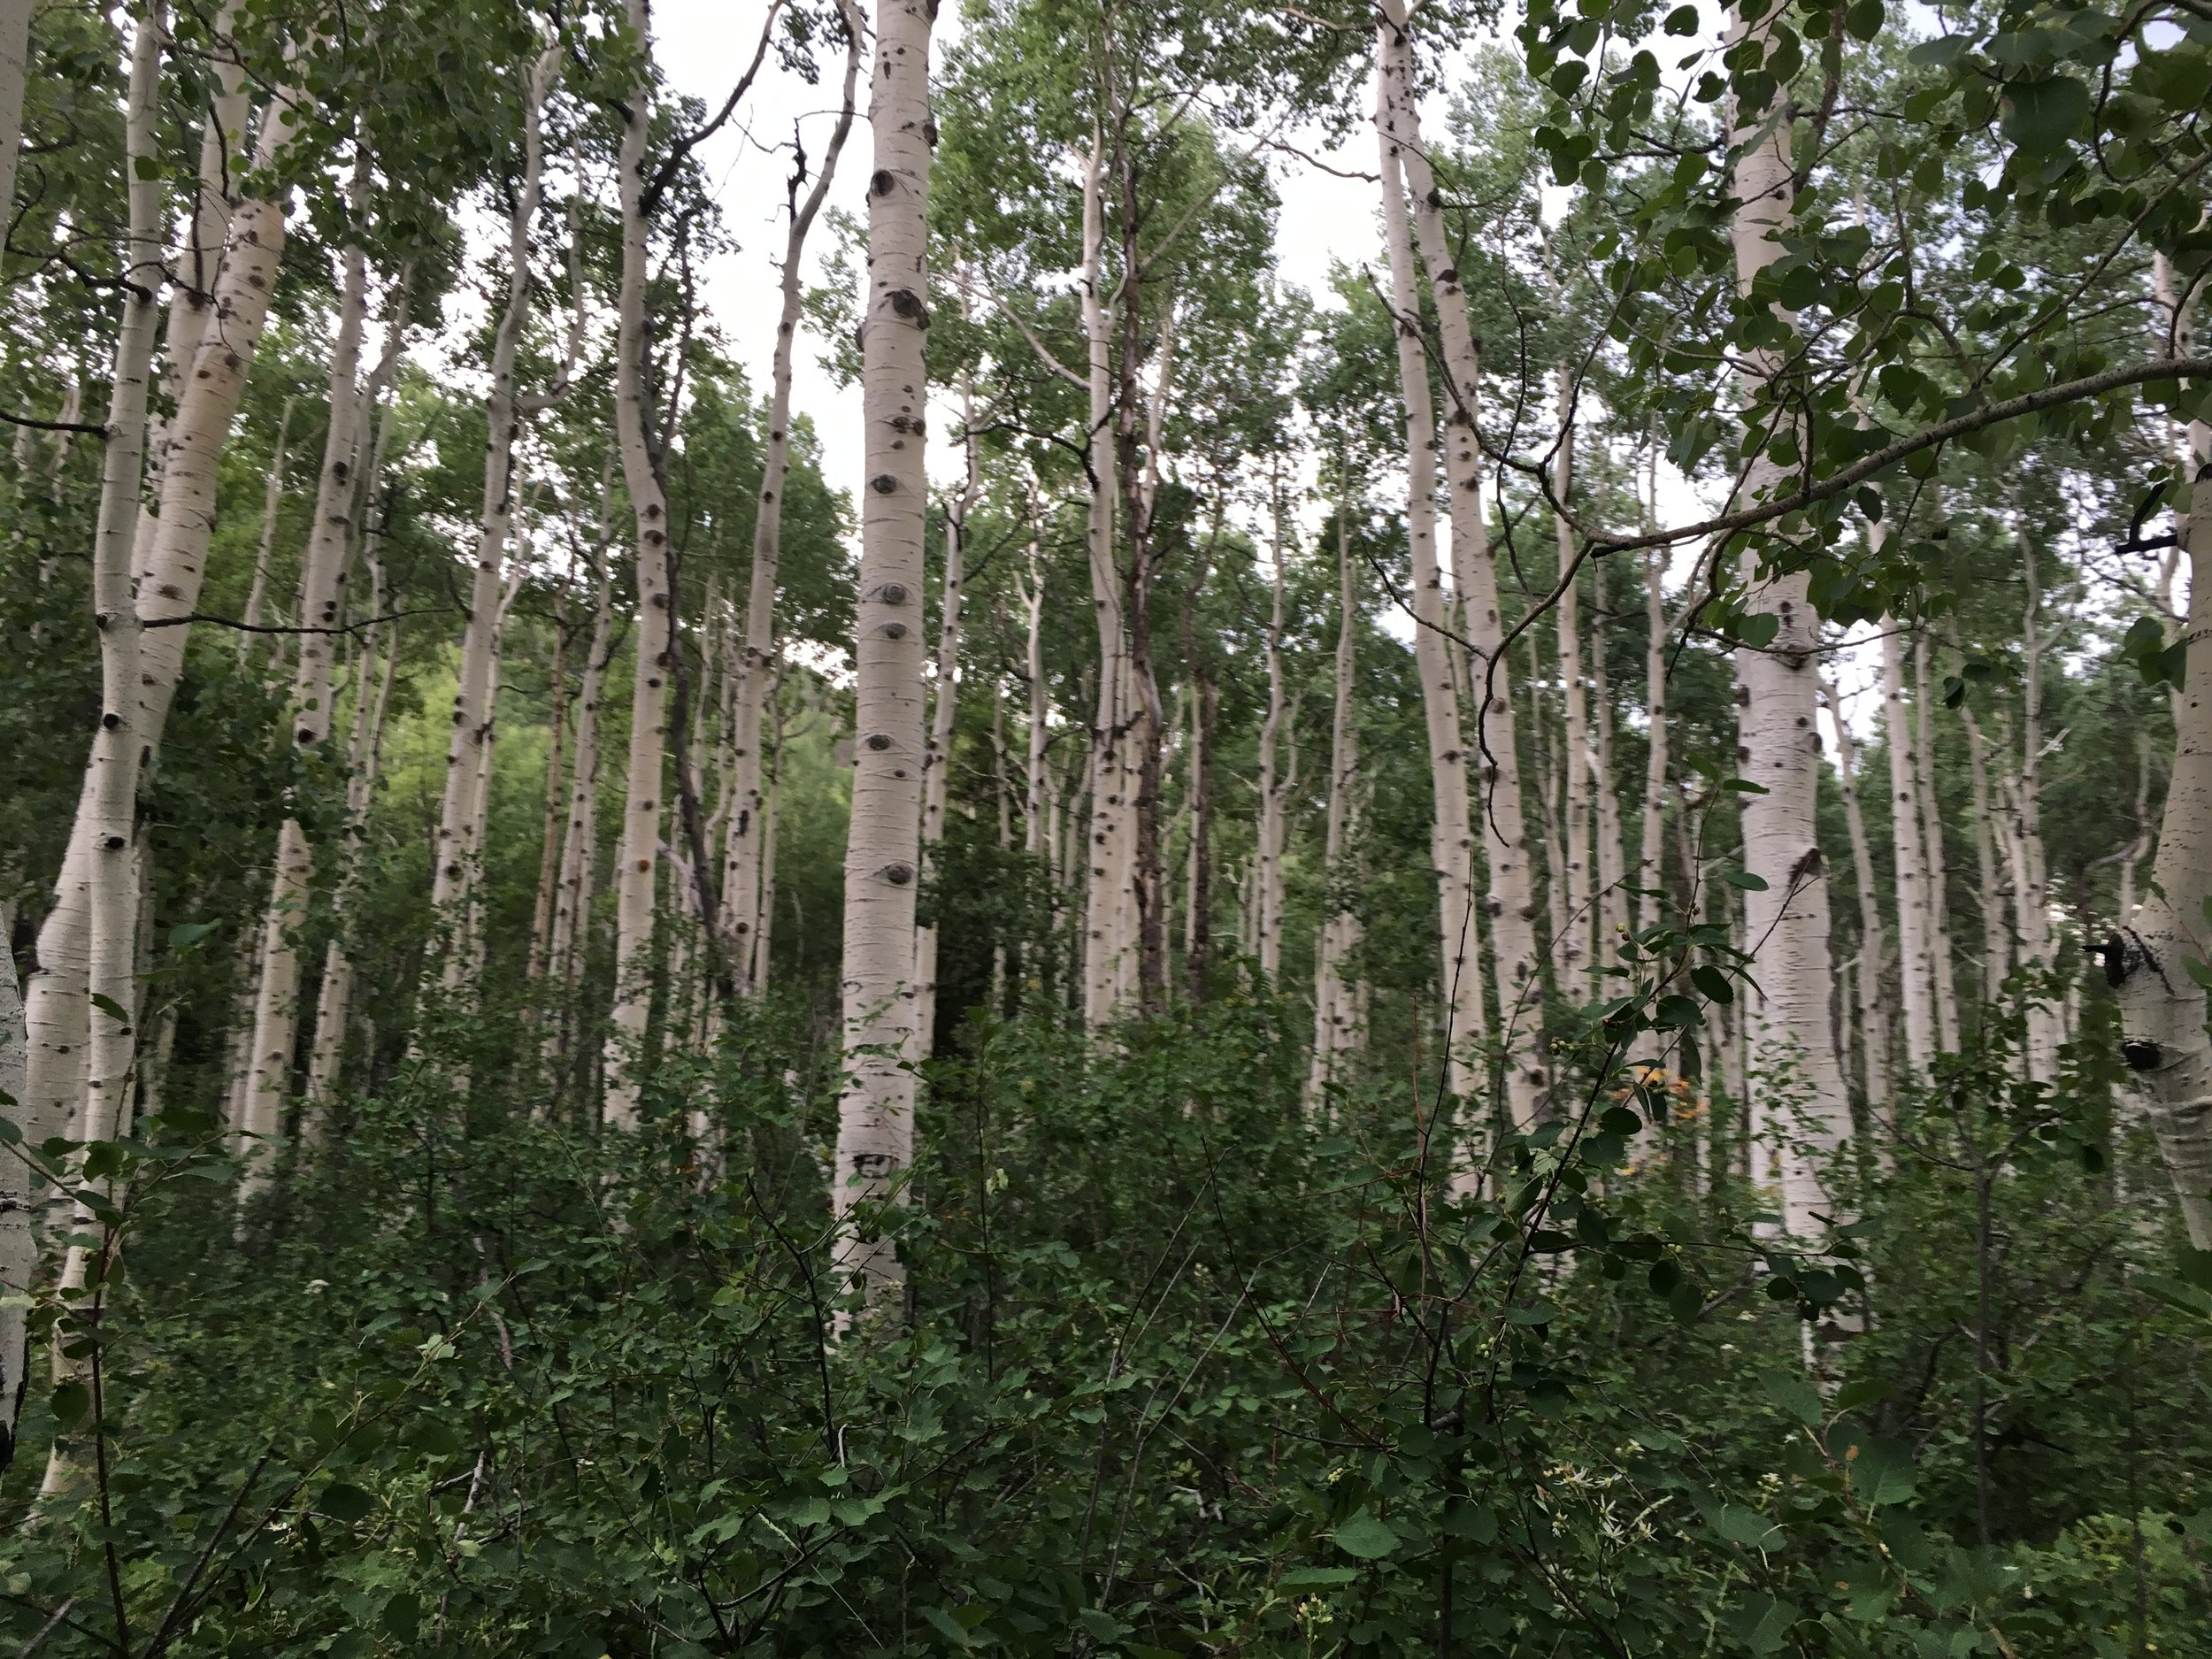 Aspens. Wow. Upon closer inspection, many of them have initials carved in them--and they whisper. They sound like waters. Supposedly King David would hang his harp in the trees and go to sleep listening to the strings played by the nght breeze.